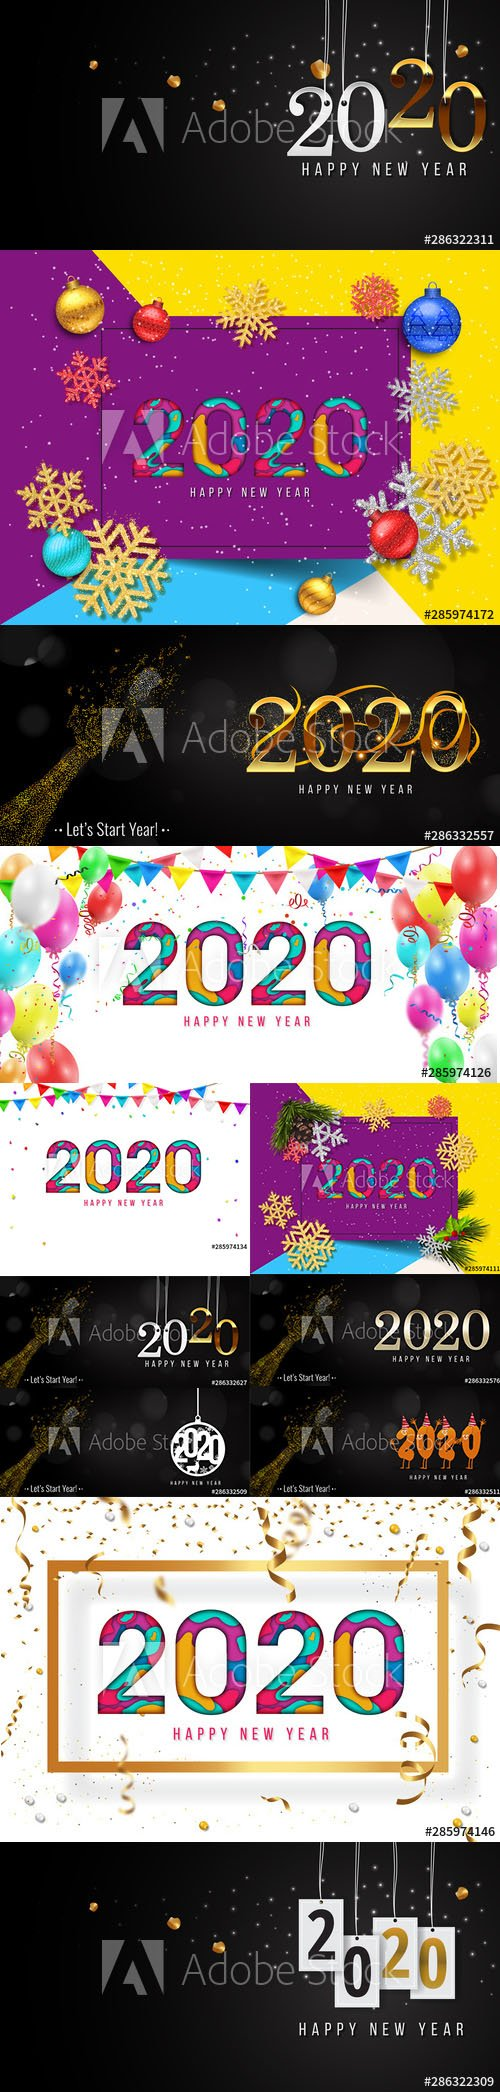 2020 Happy New Year greeting card and New Year AI background